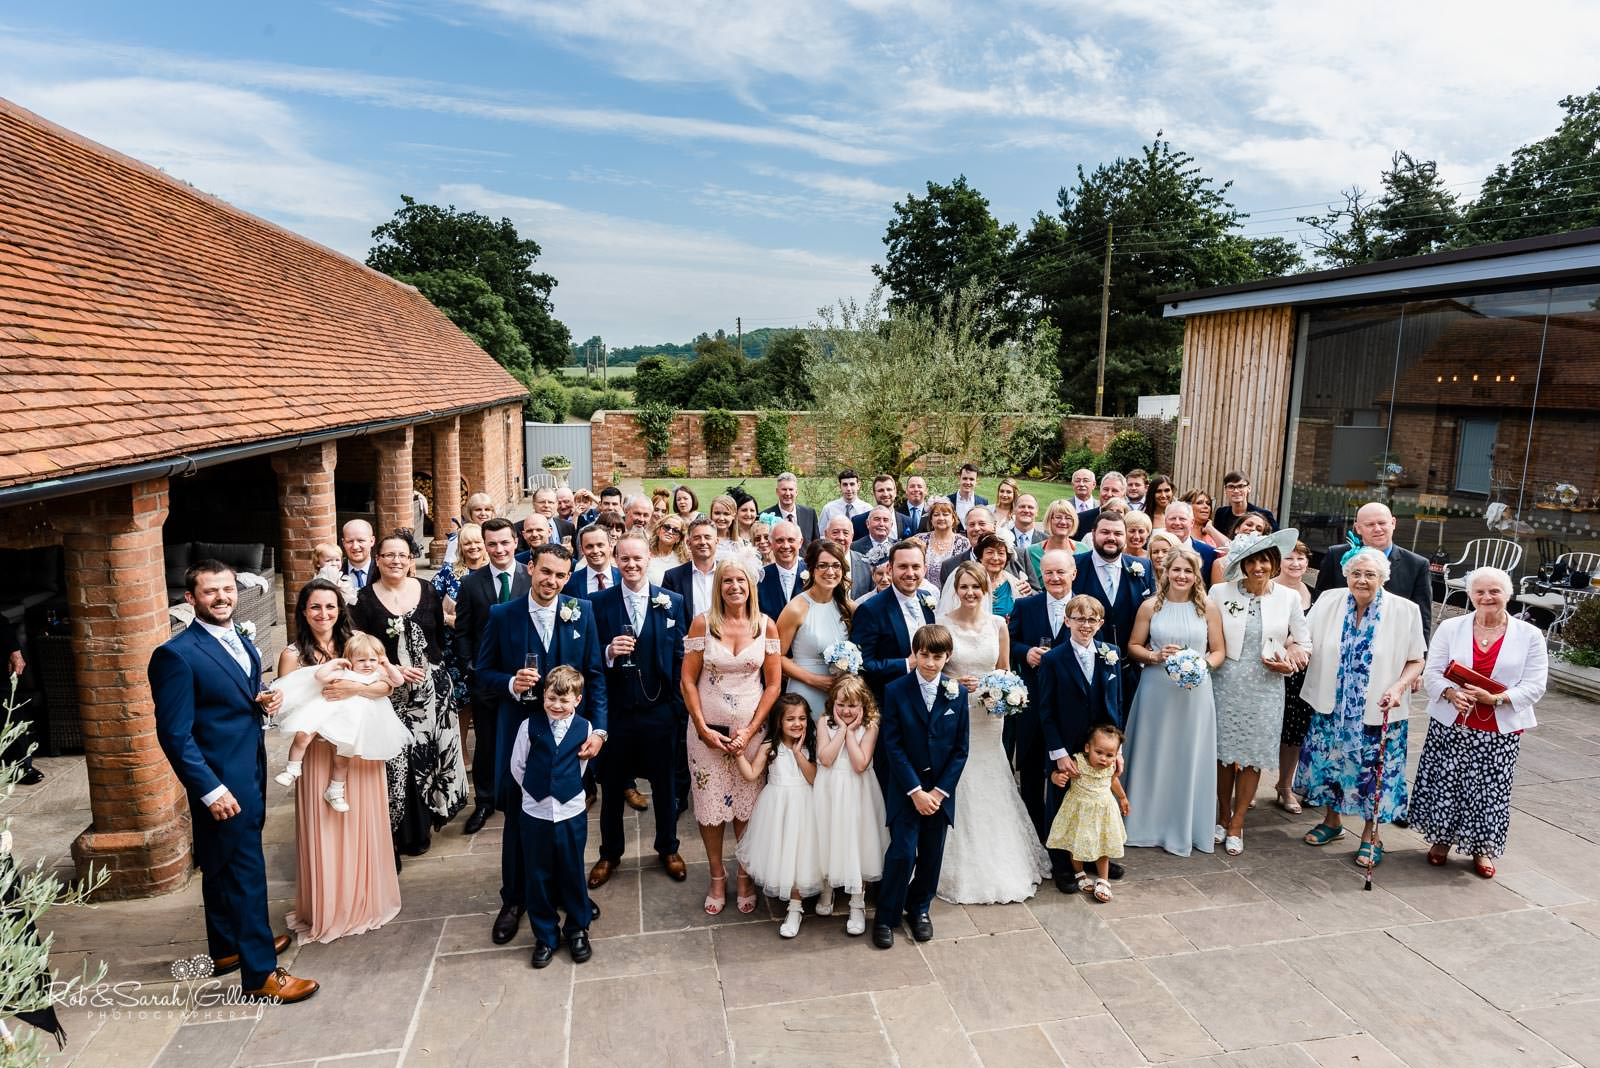 Group photo at Swallows Nest Barn wedding